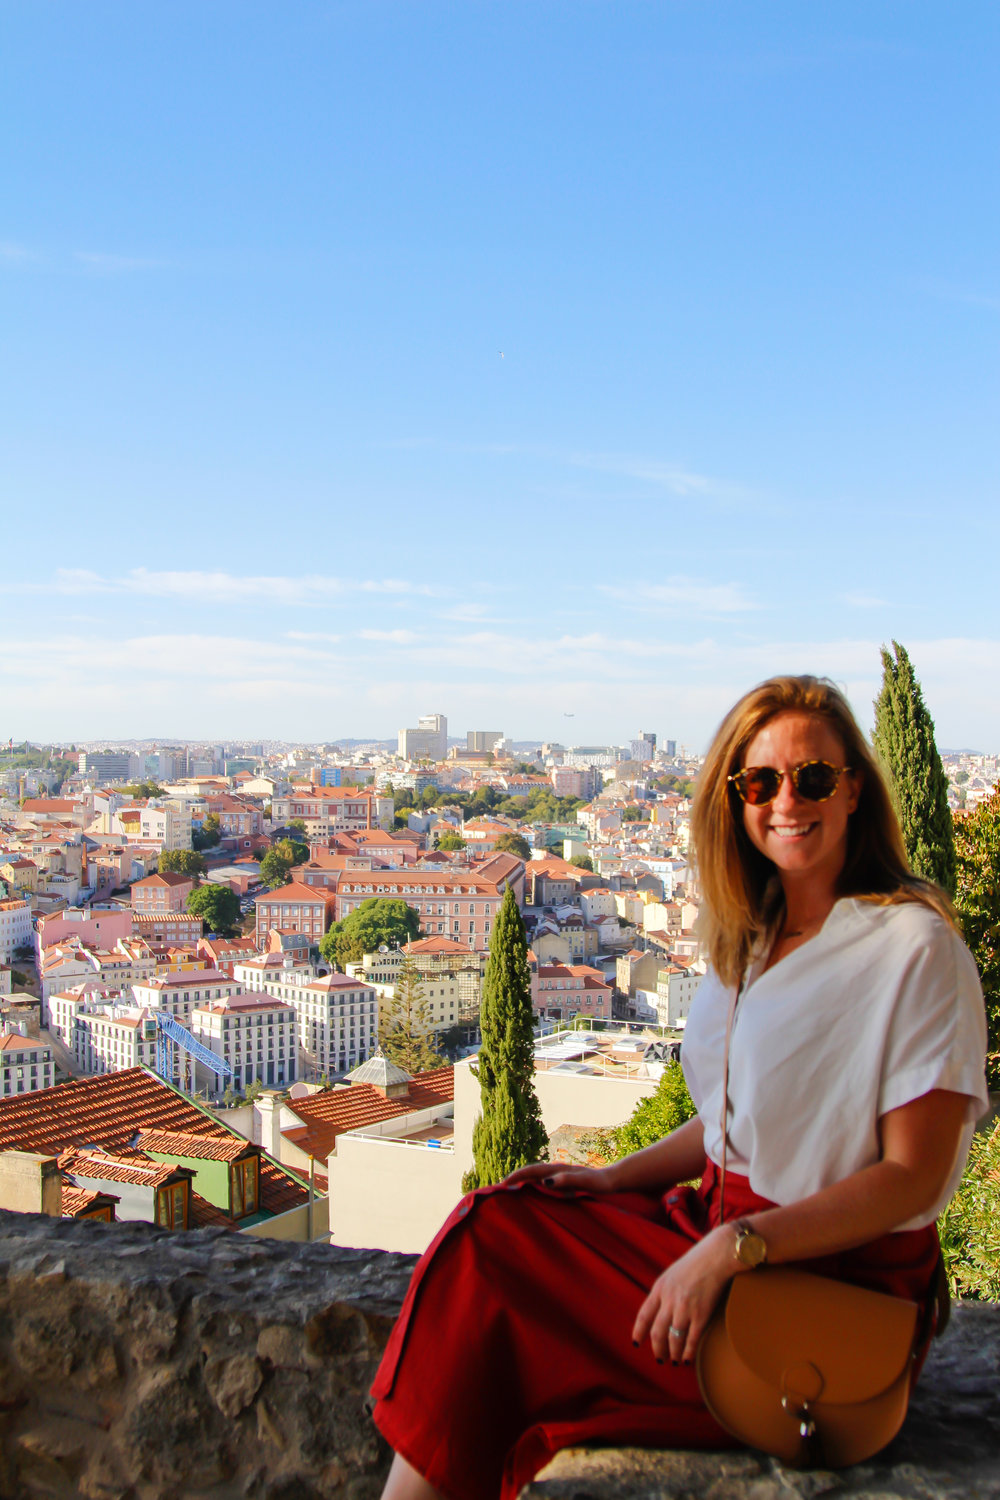 On top of Lisbon! (skirt and top from Madewell, bag from Cambridge Satchel Company)